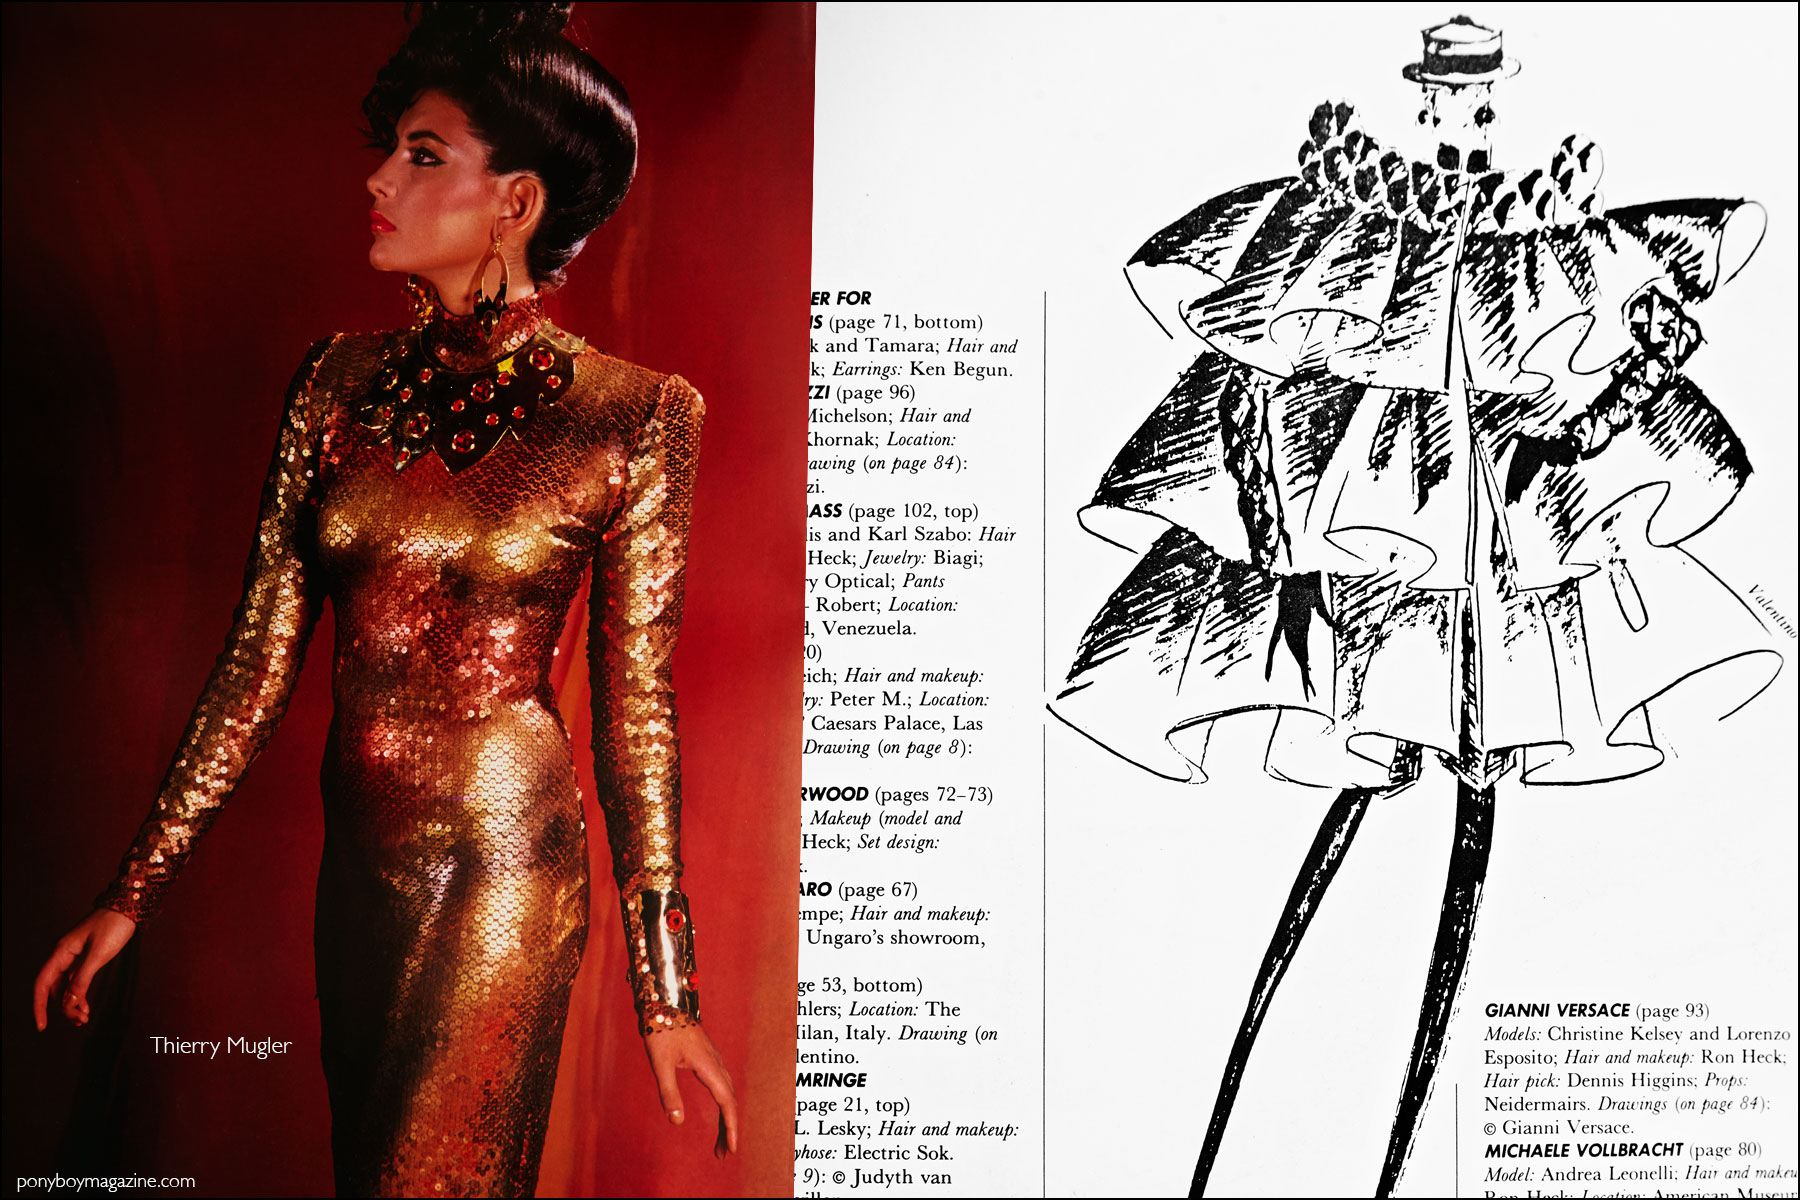 A Thierry Mugler design and Valentino sketch featured in the book Fashion: 2001 by Lucille Khornak. Ponyboy magazine NY.